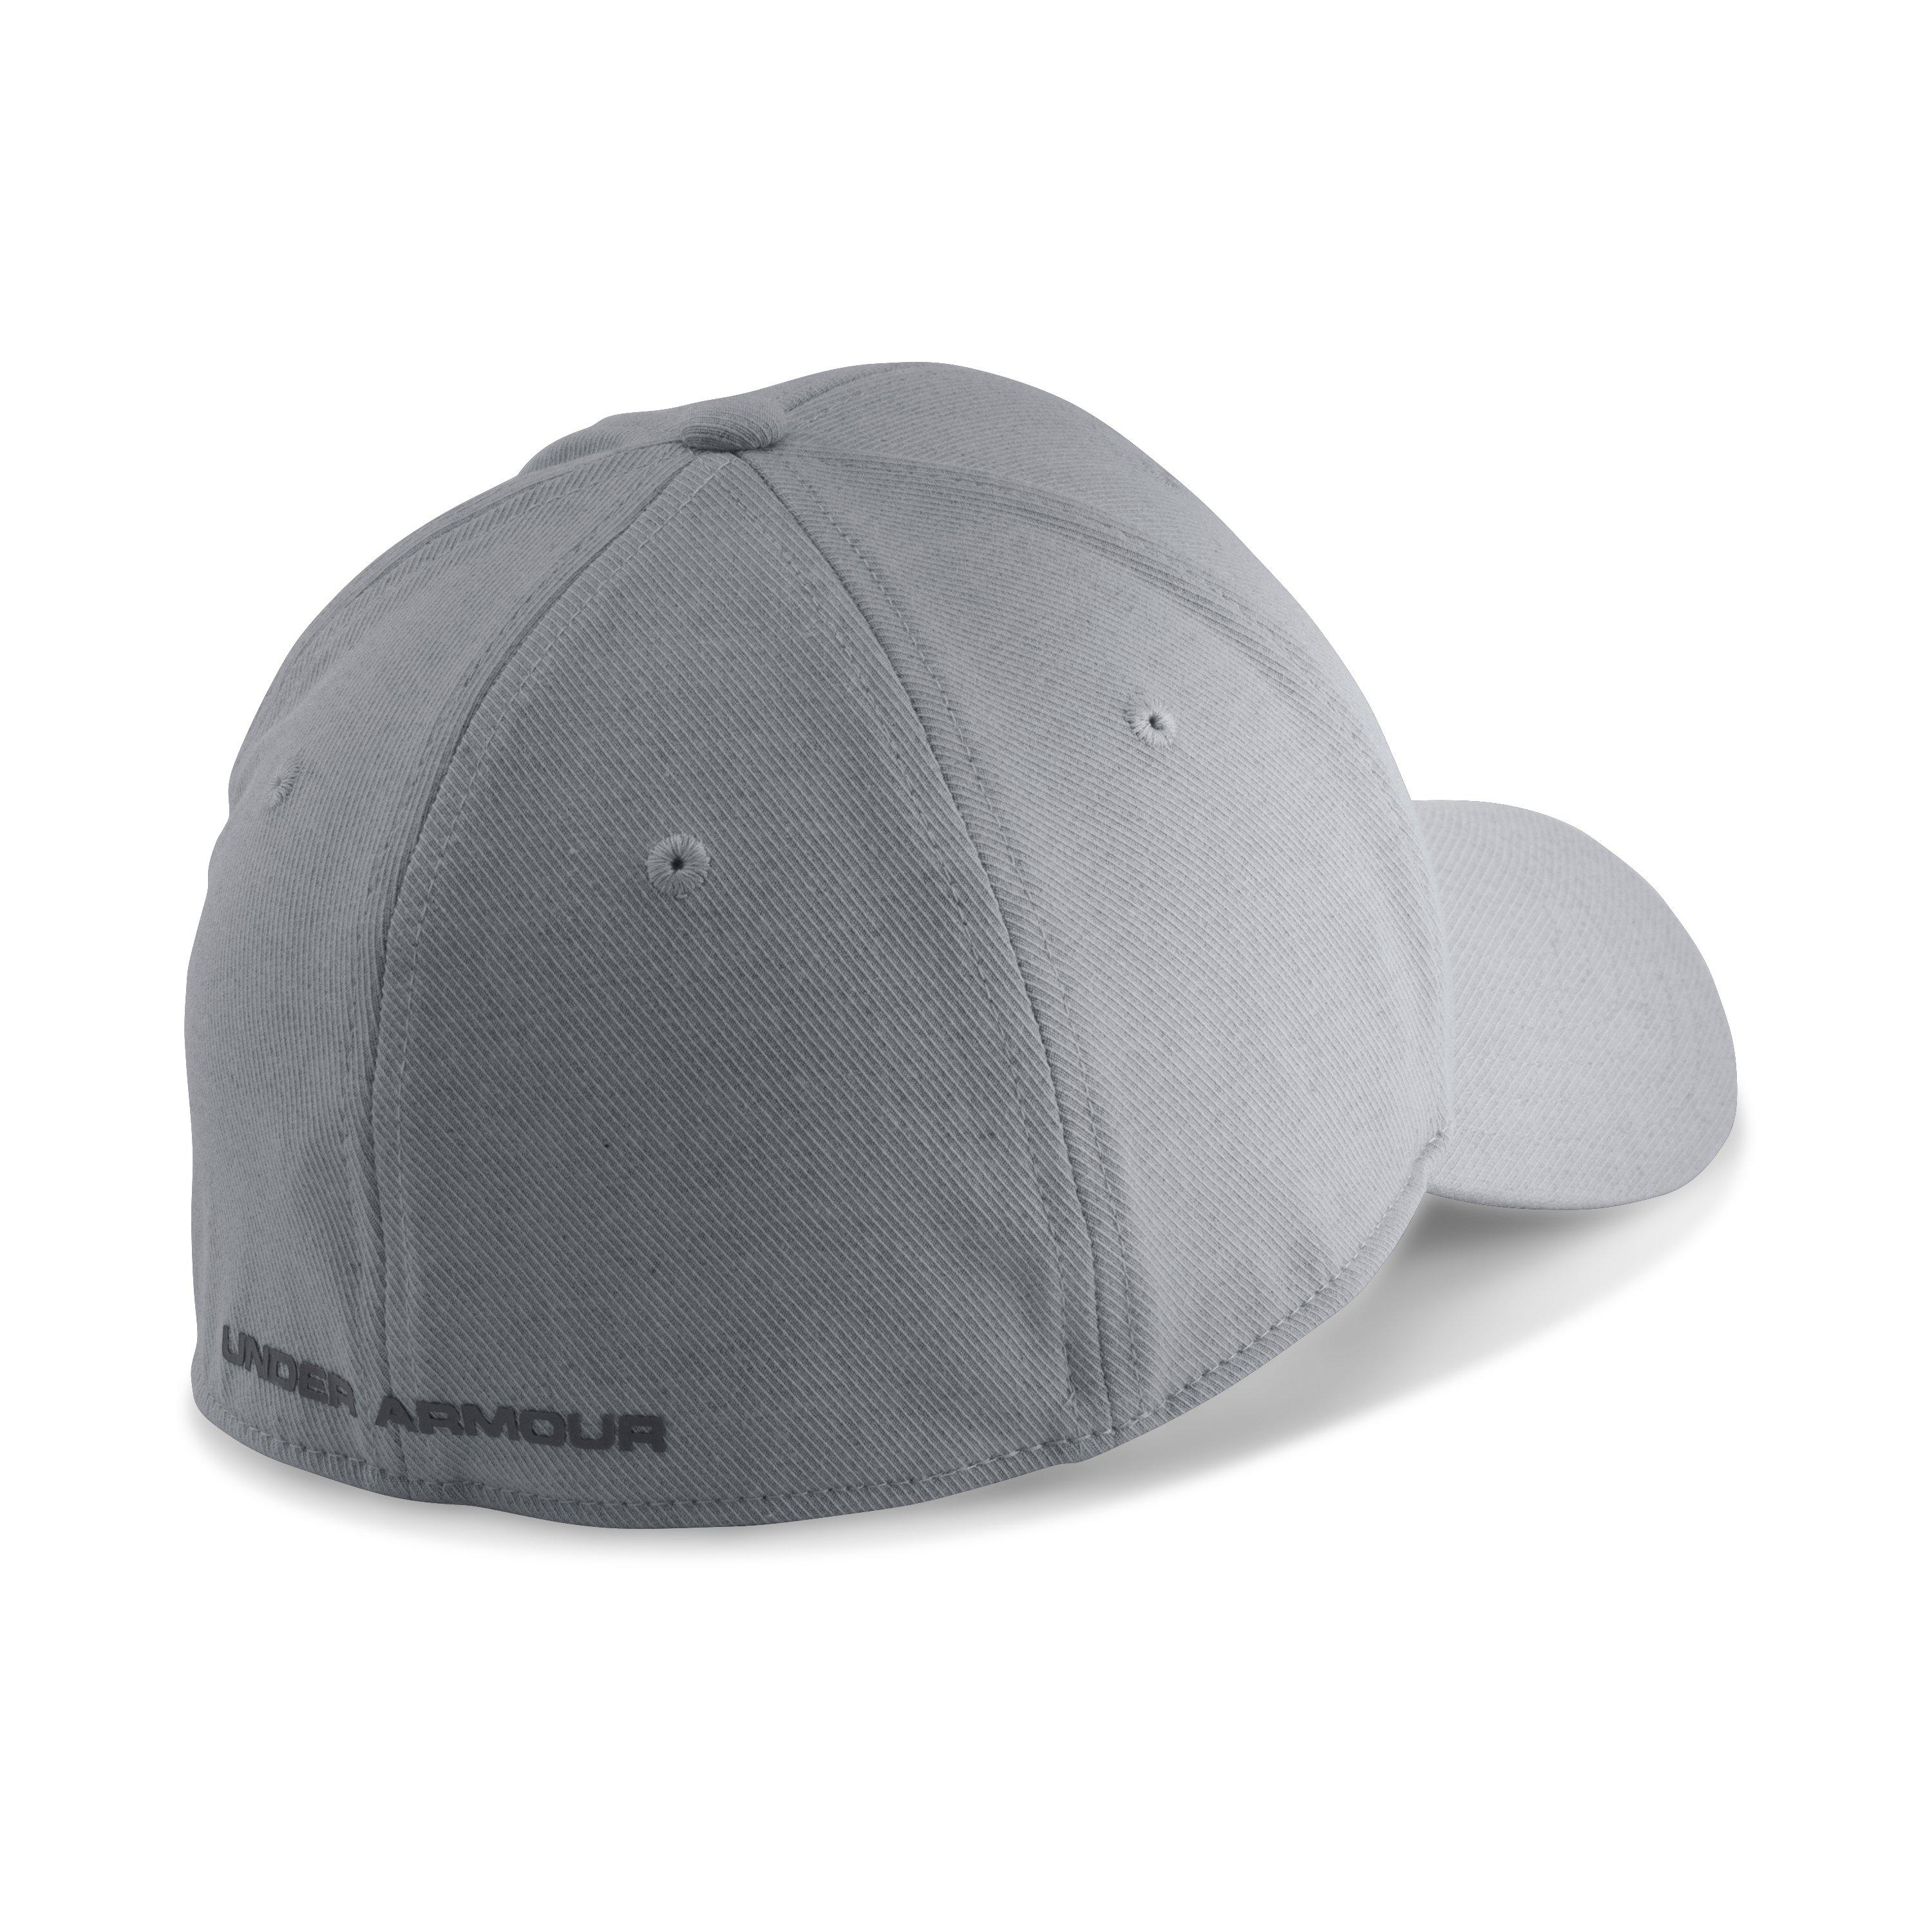 60f23fc378086 Under Armour Men s Ua Wool Low Crown Cap in Gray for Men - Lyst